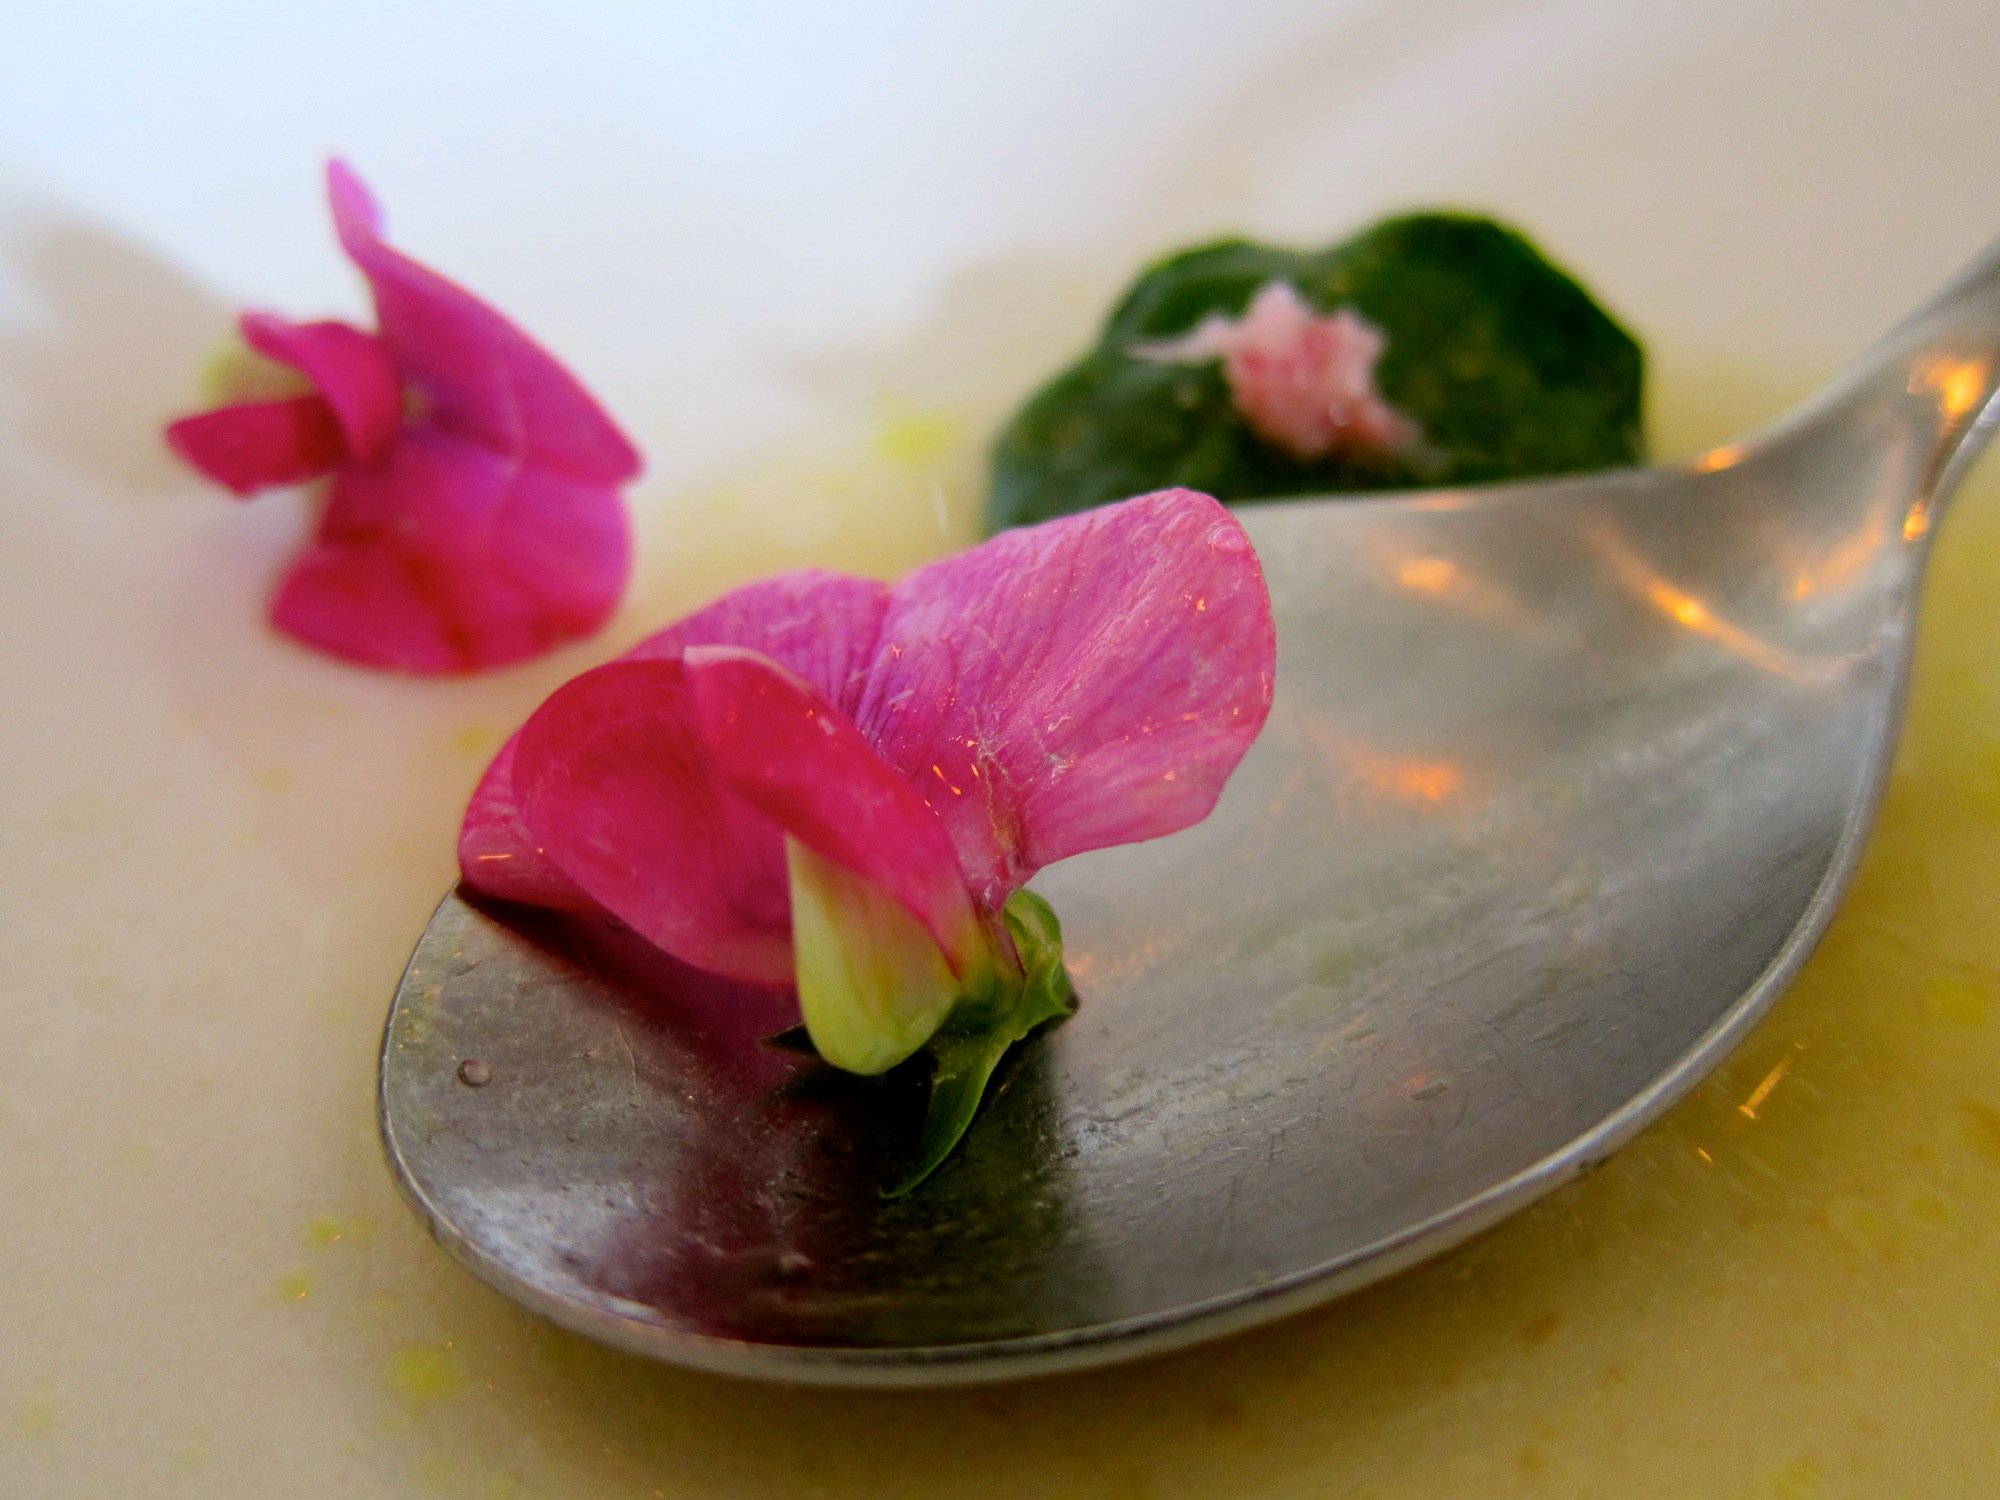 Sweet pea flowers in foreground, baby nasturtium leaves in background wrapping shrimp (wish I got a better photo of the nasturtium!), rhubarb broth.